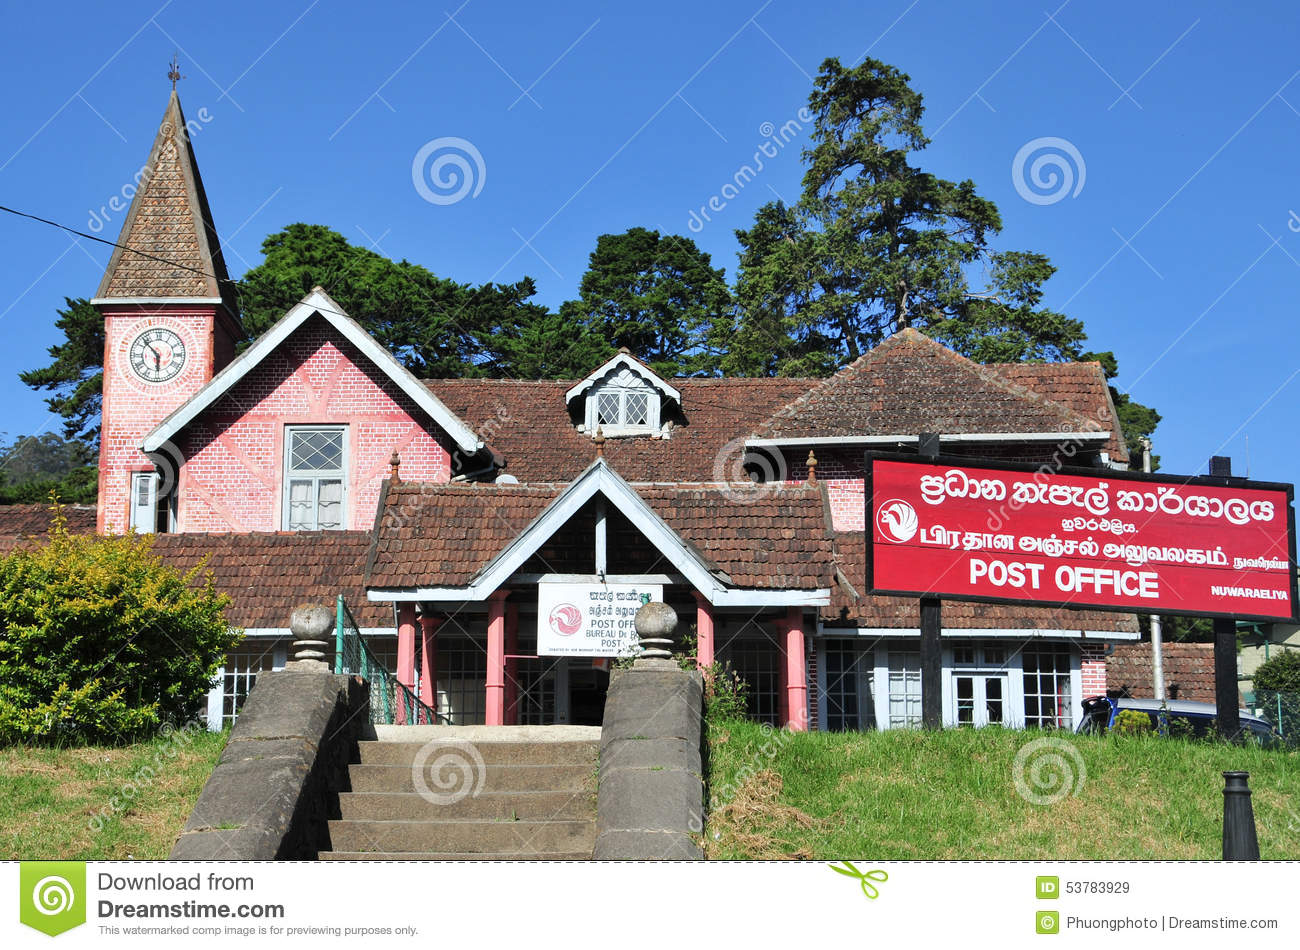 Post office building in the city of nuwara eliya editorial - Sri lankan passport office in colombo ...